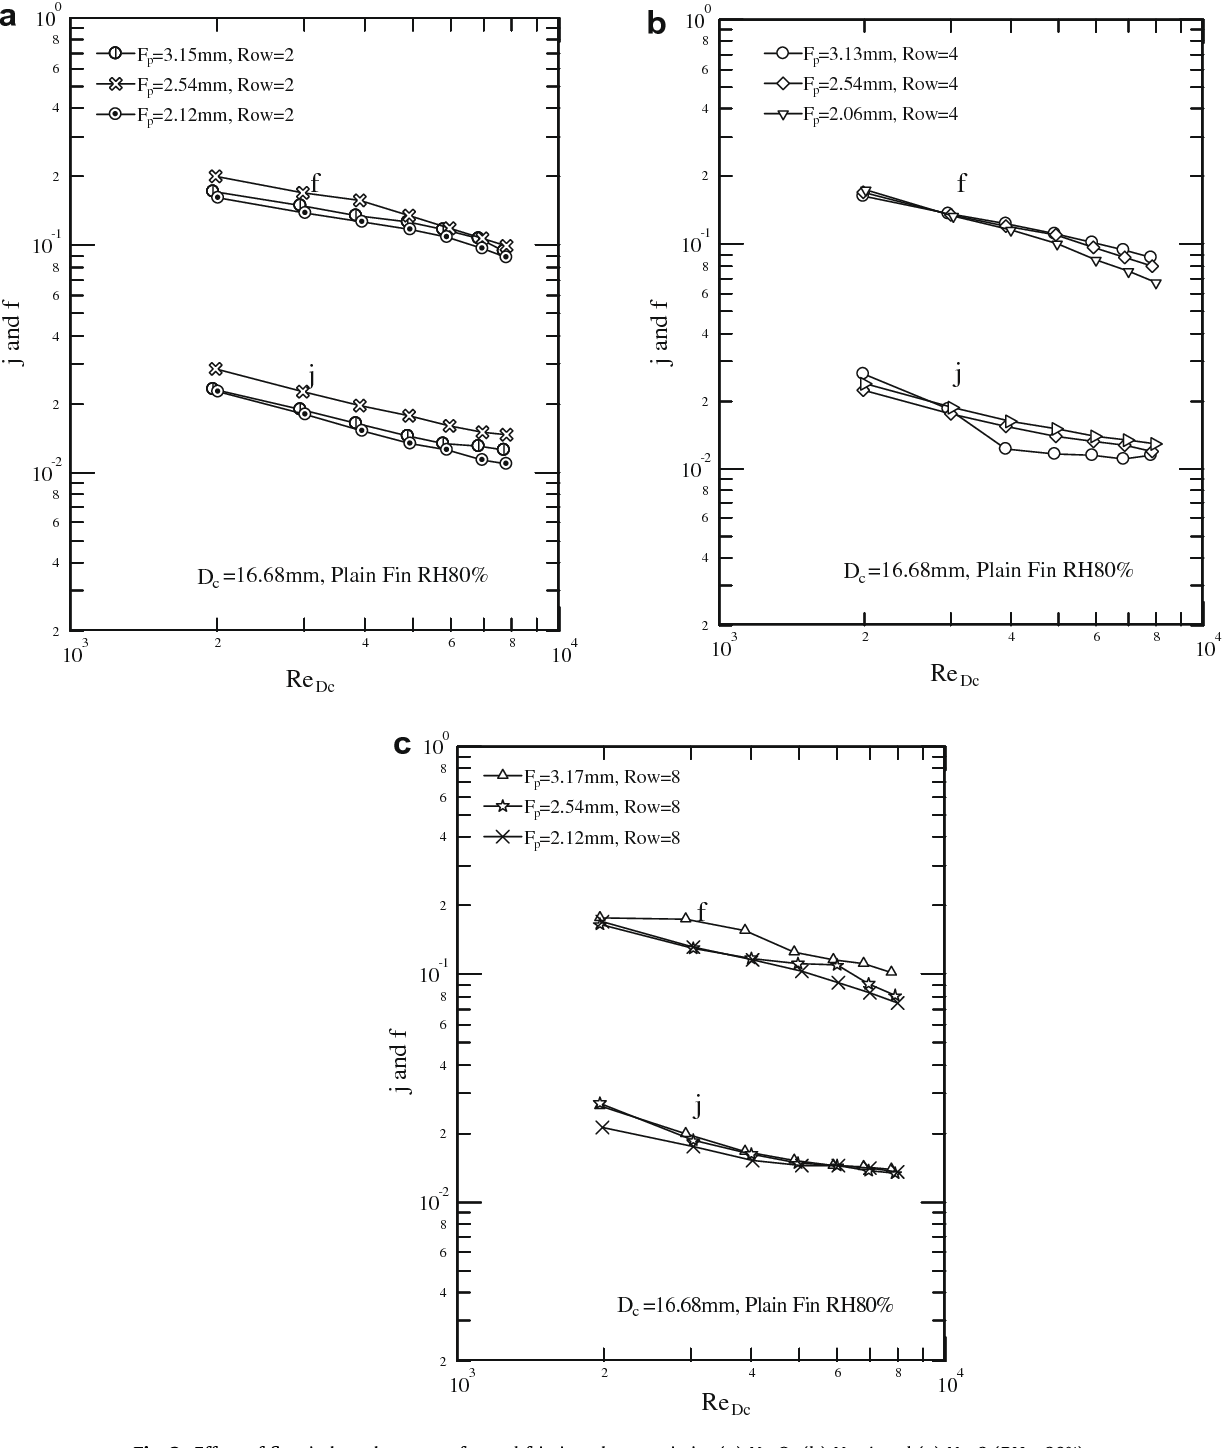 Airside performance of fin-and-tube heat exchangers in